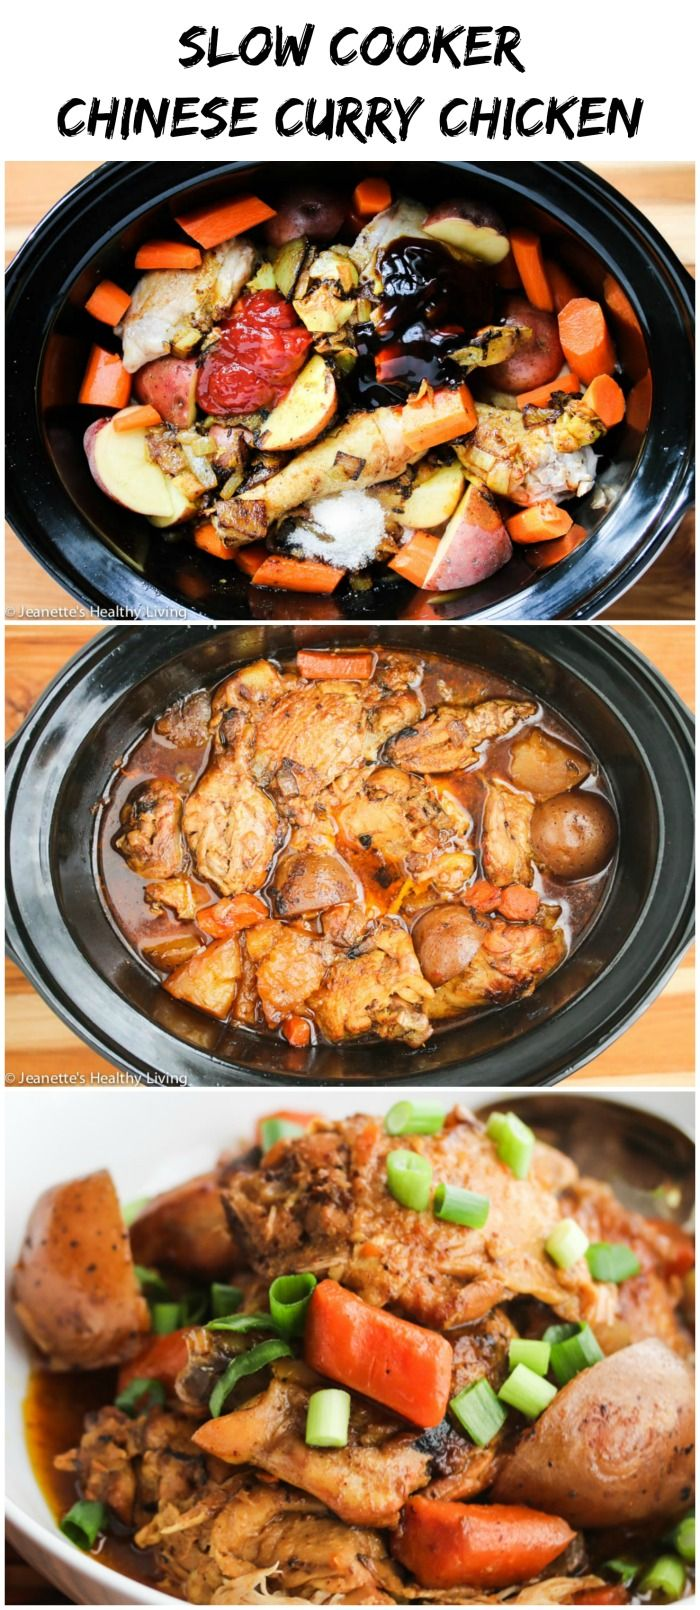 Slow Cooker Chinese Curry Chicken  Recipe  Healthy Slow -7299